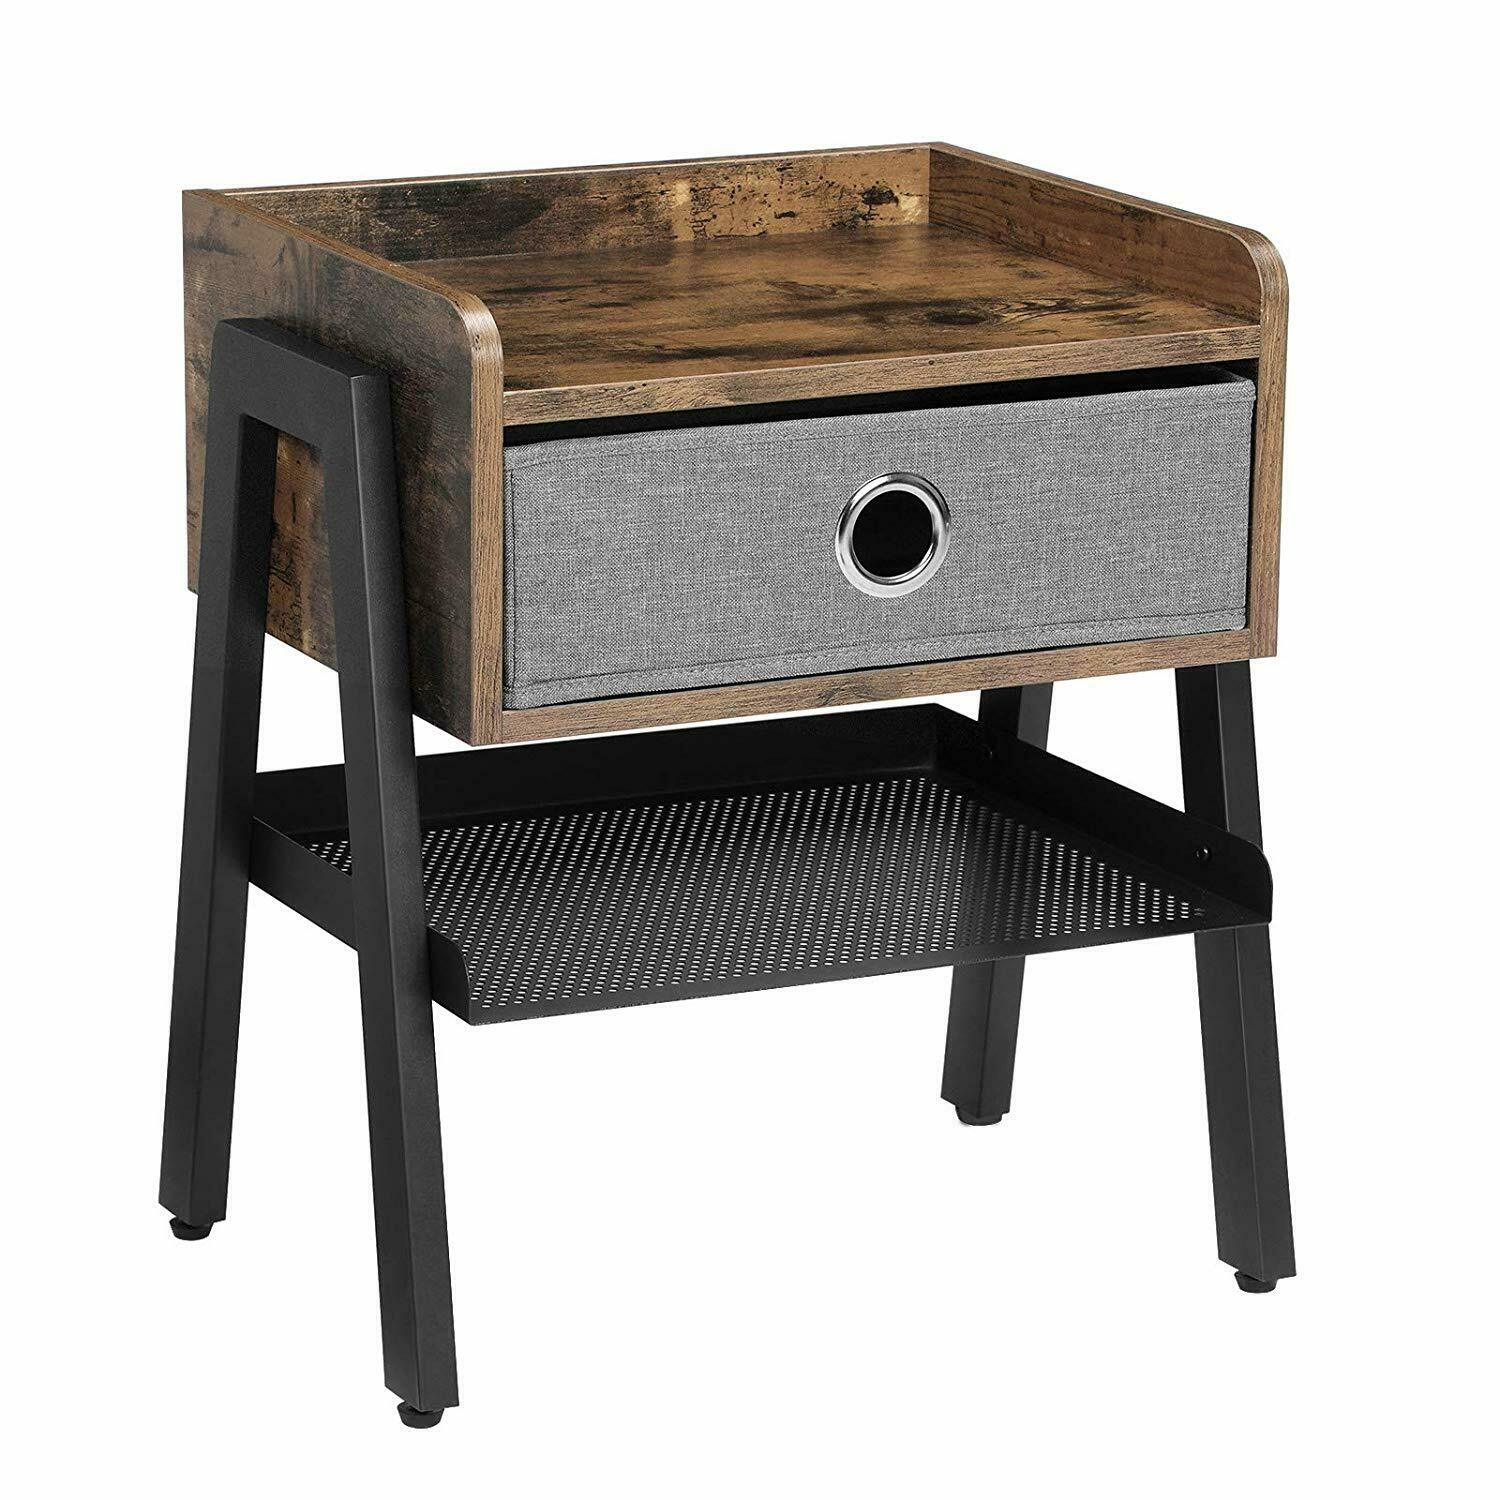 Industrial Nightstand End Table Metal Shelf Side Table Drawer Accent Wood Look